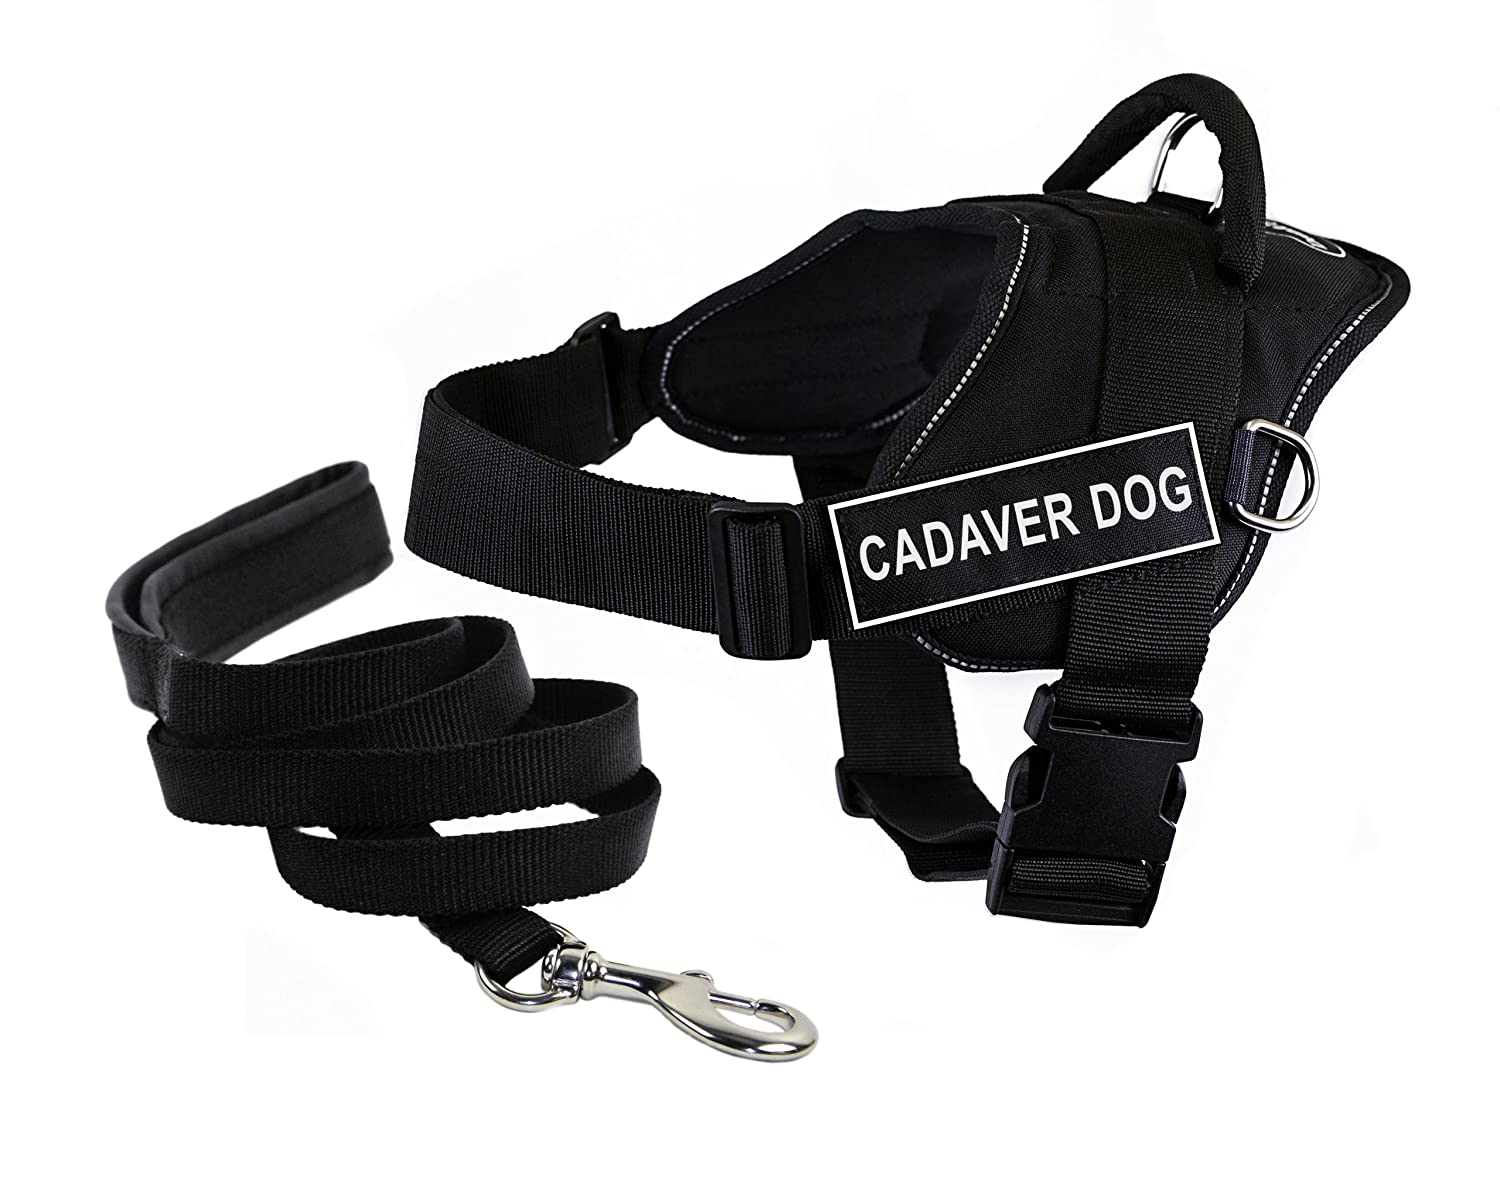 Dean & Tyler's DT Fun Cadaver Dog  Harness with Reflective Trim, Medium, and 6 ft Padded Puppy Leash.